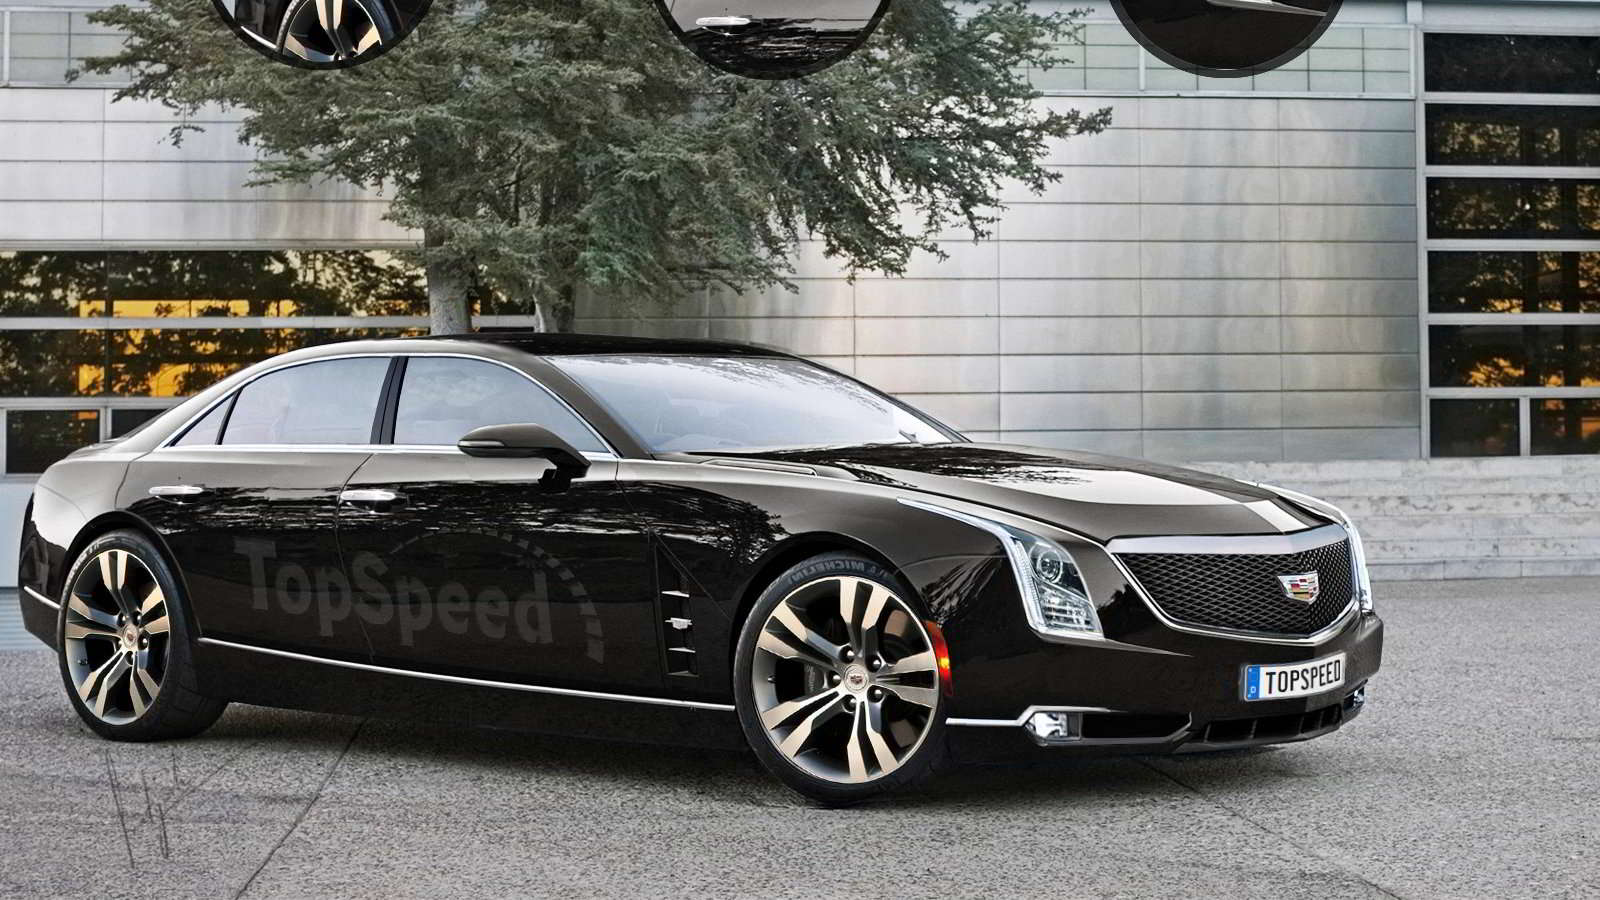 29 A 2020 Cadillac LTS Spy Shoot